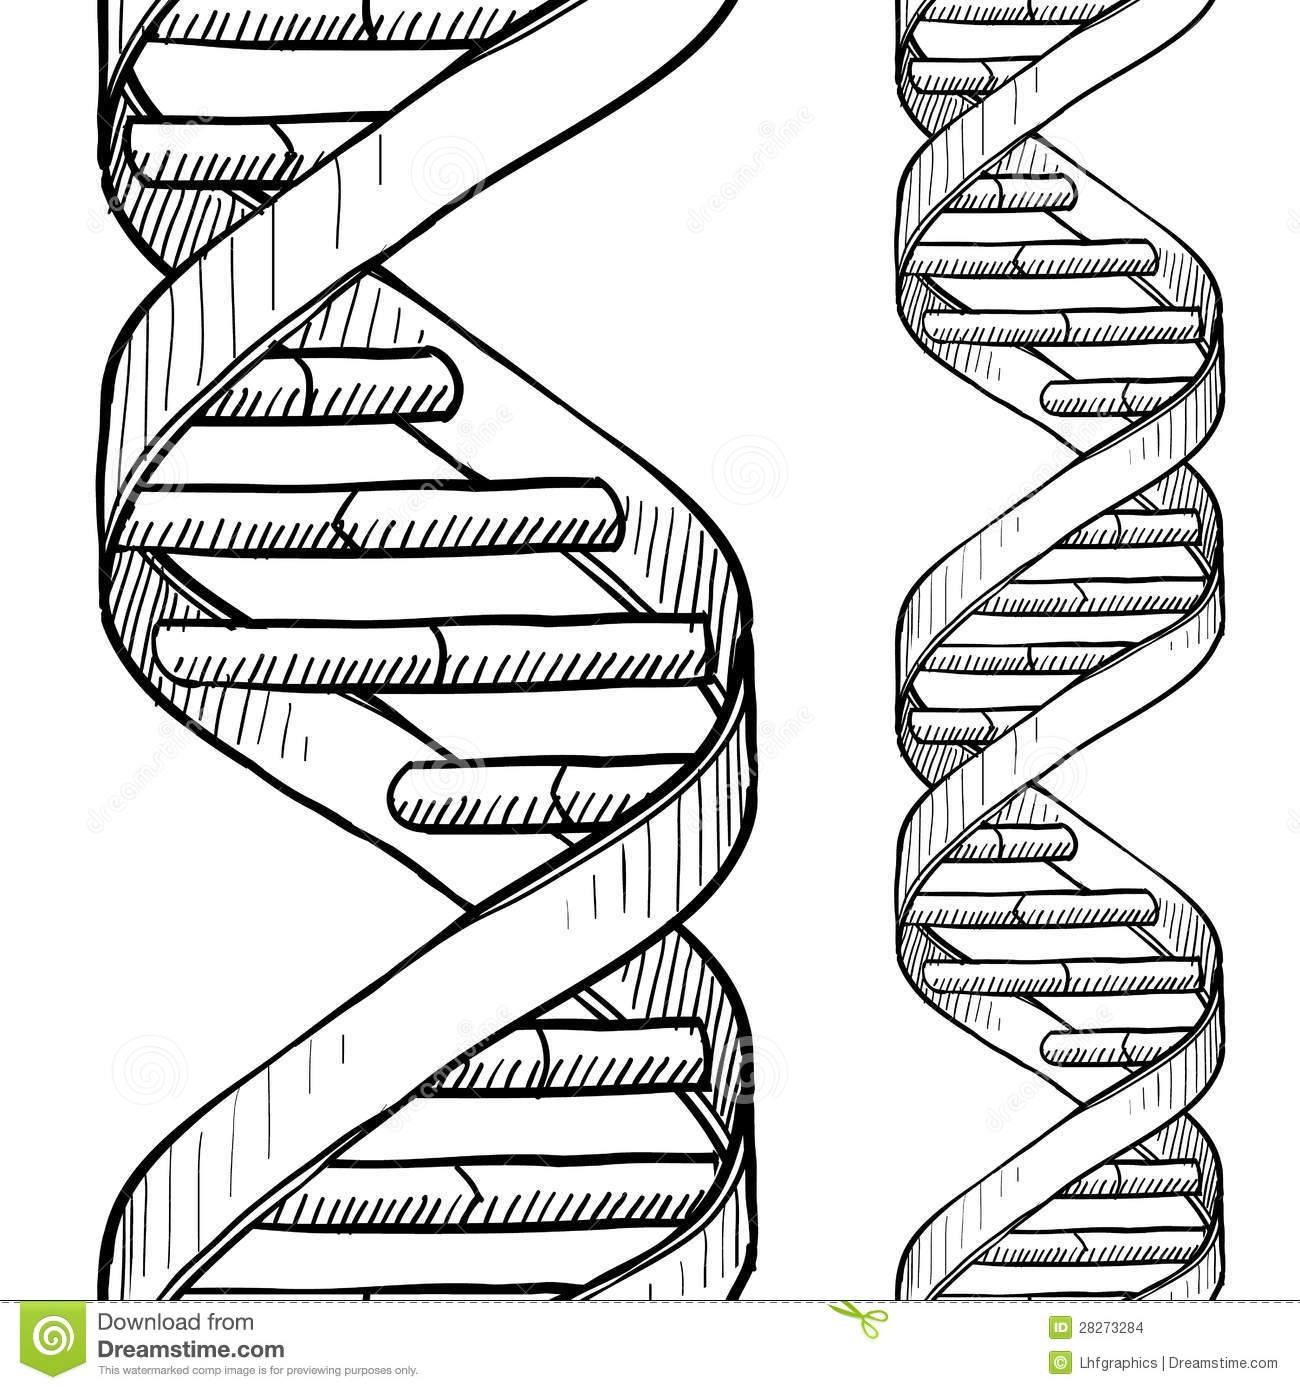 Seamless Dna Double Helix Sketch Stock Vector